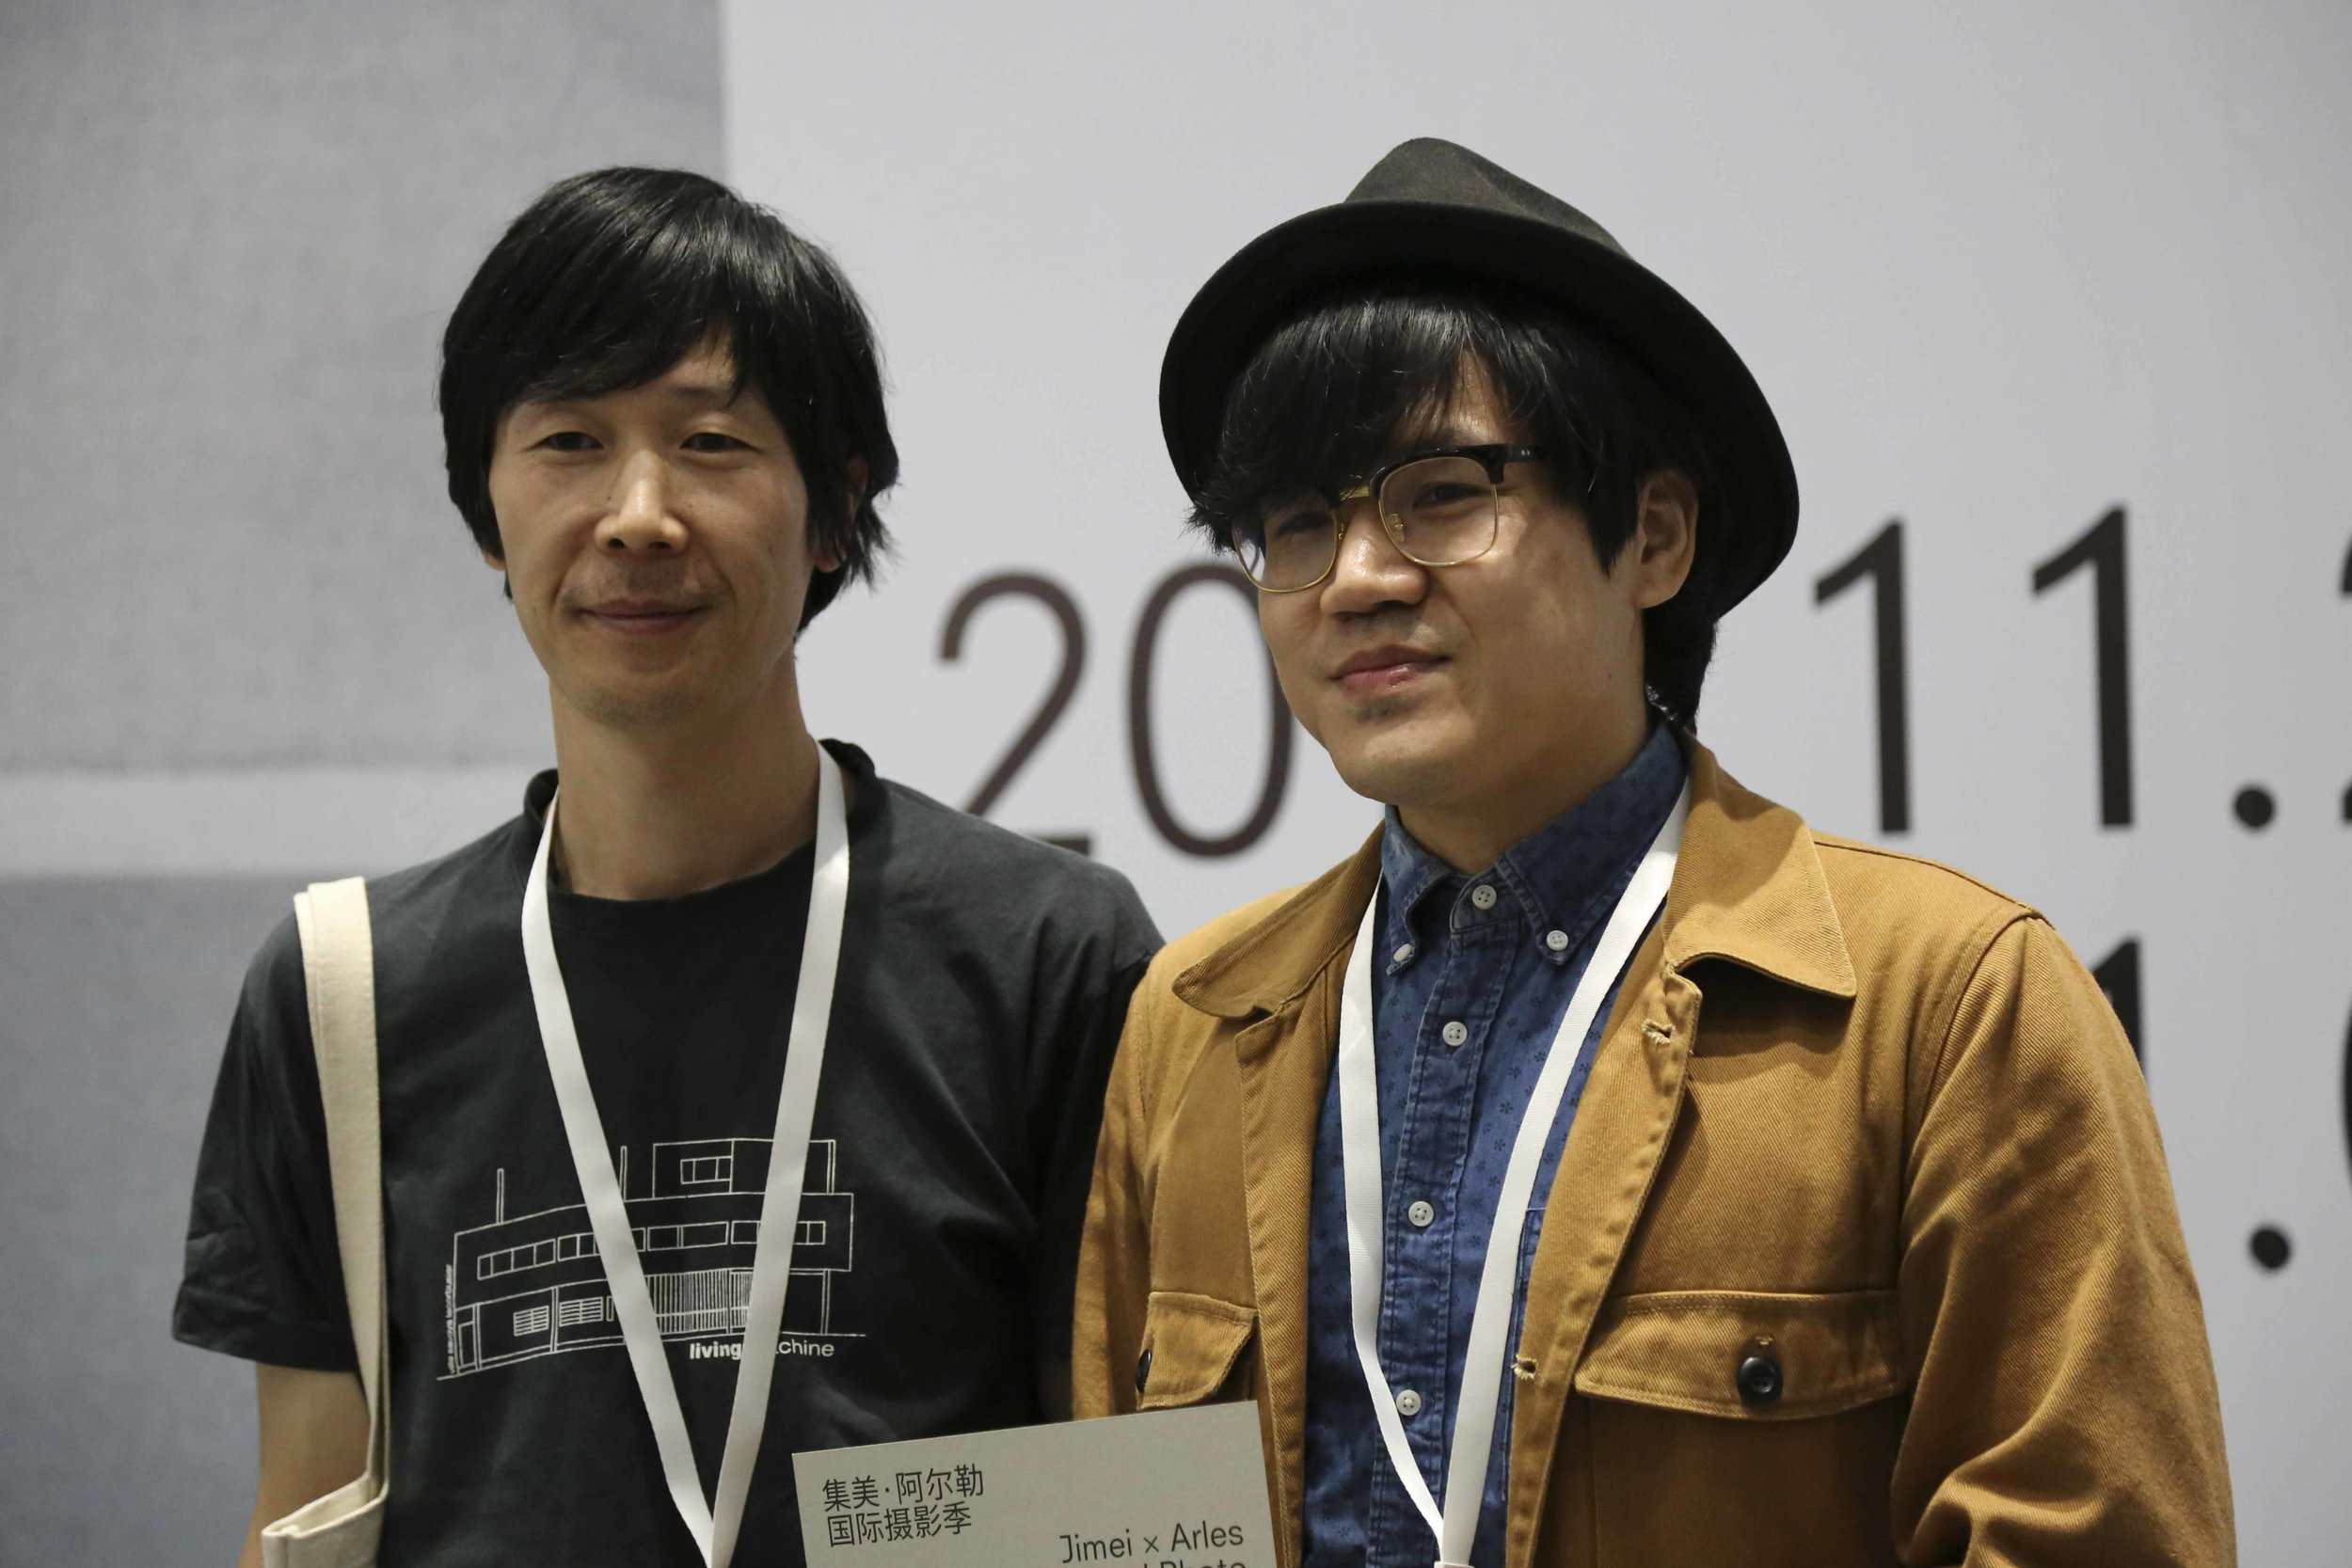 Curator Dong Bingfeng and artist Lei Lei